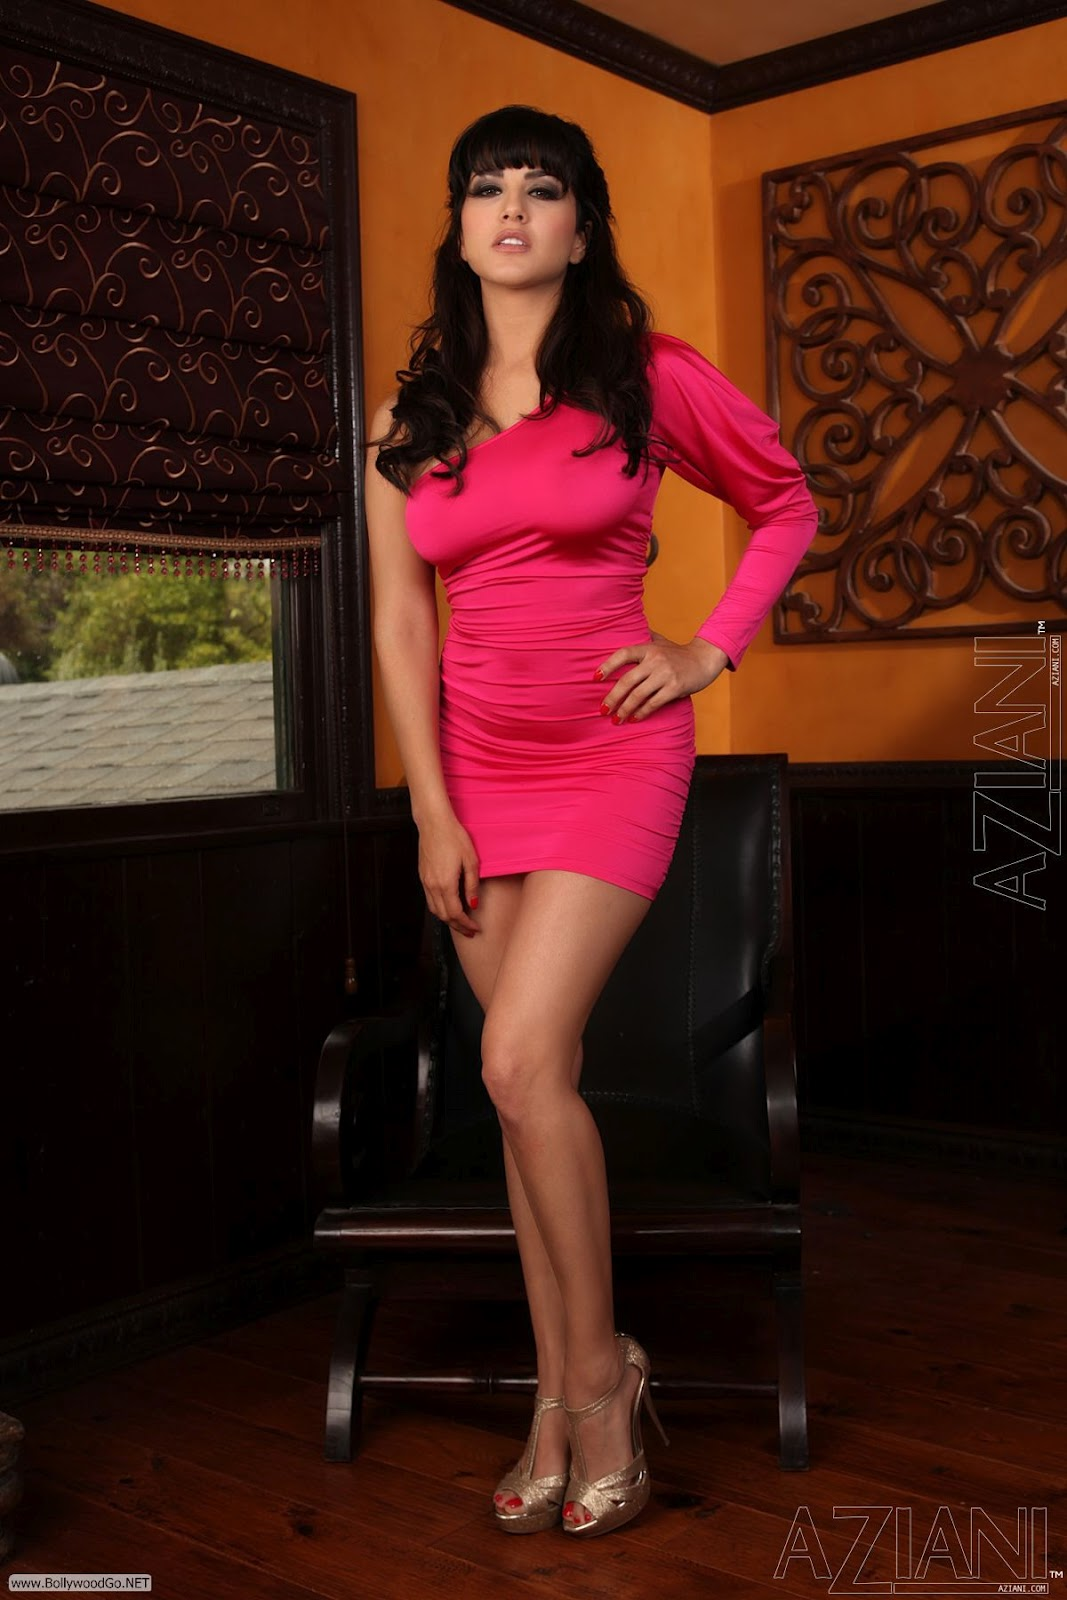 Sada in Blue Short Skirt Tempting Spicy Photo Collection